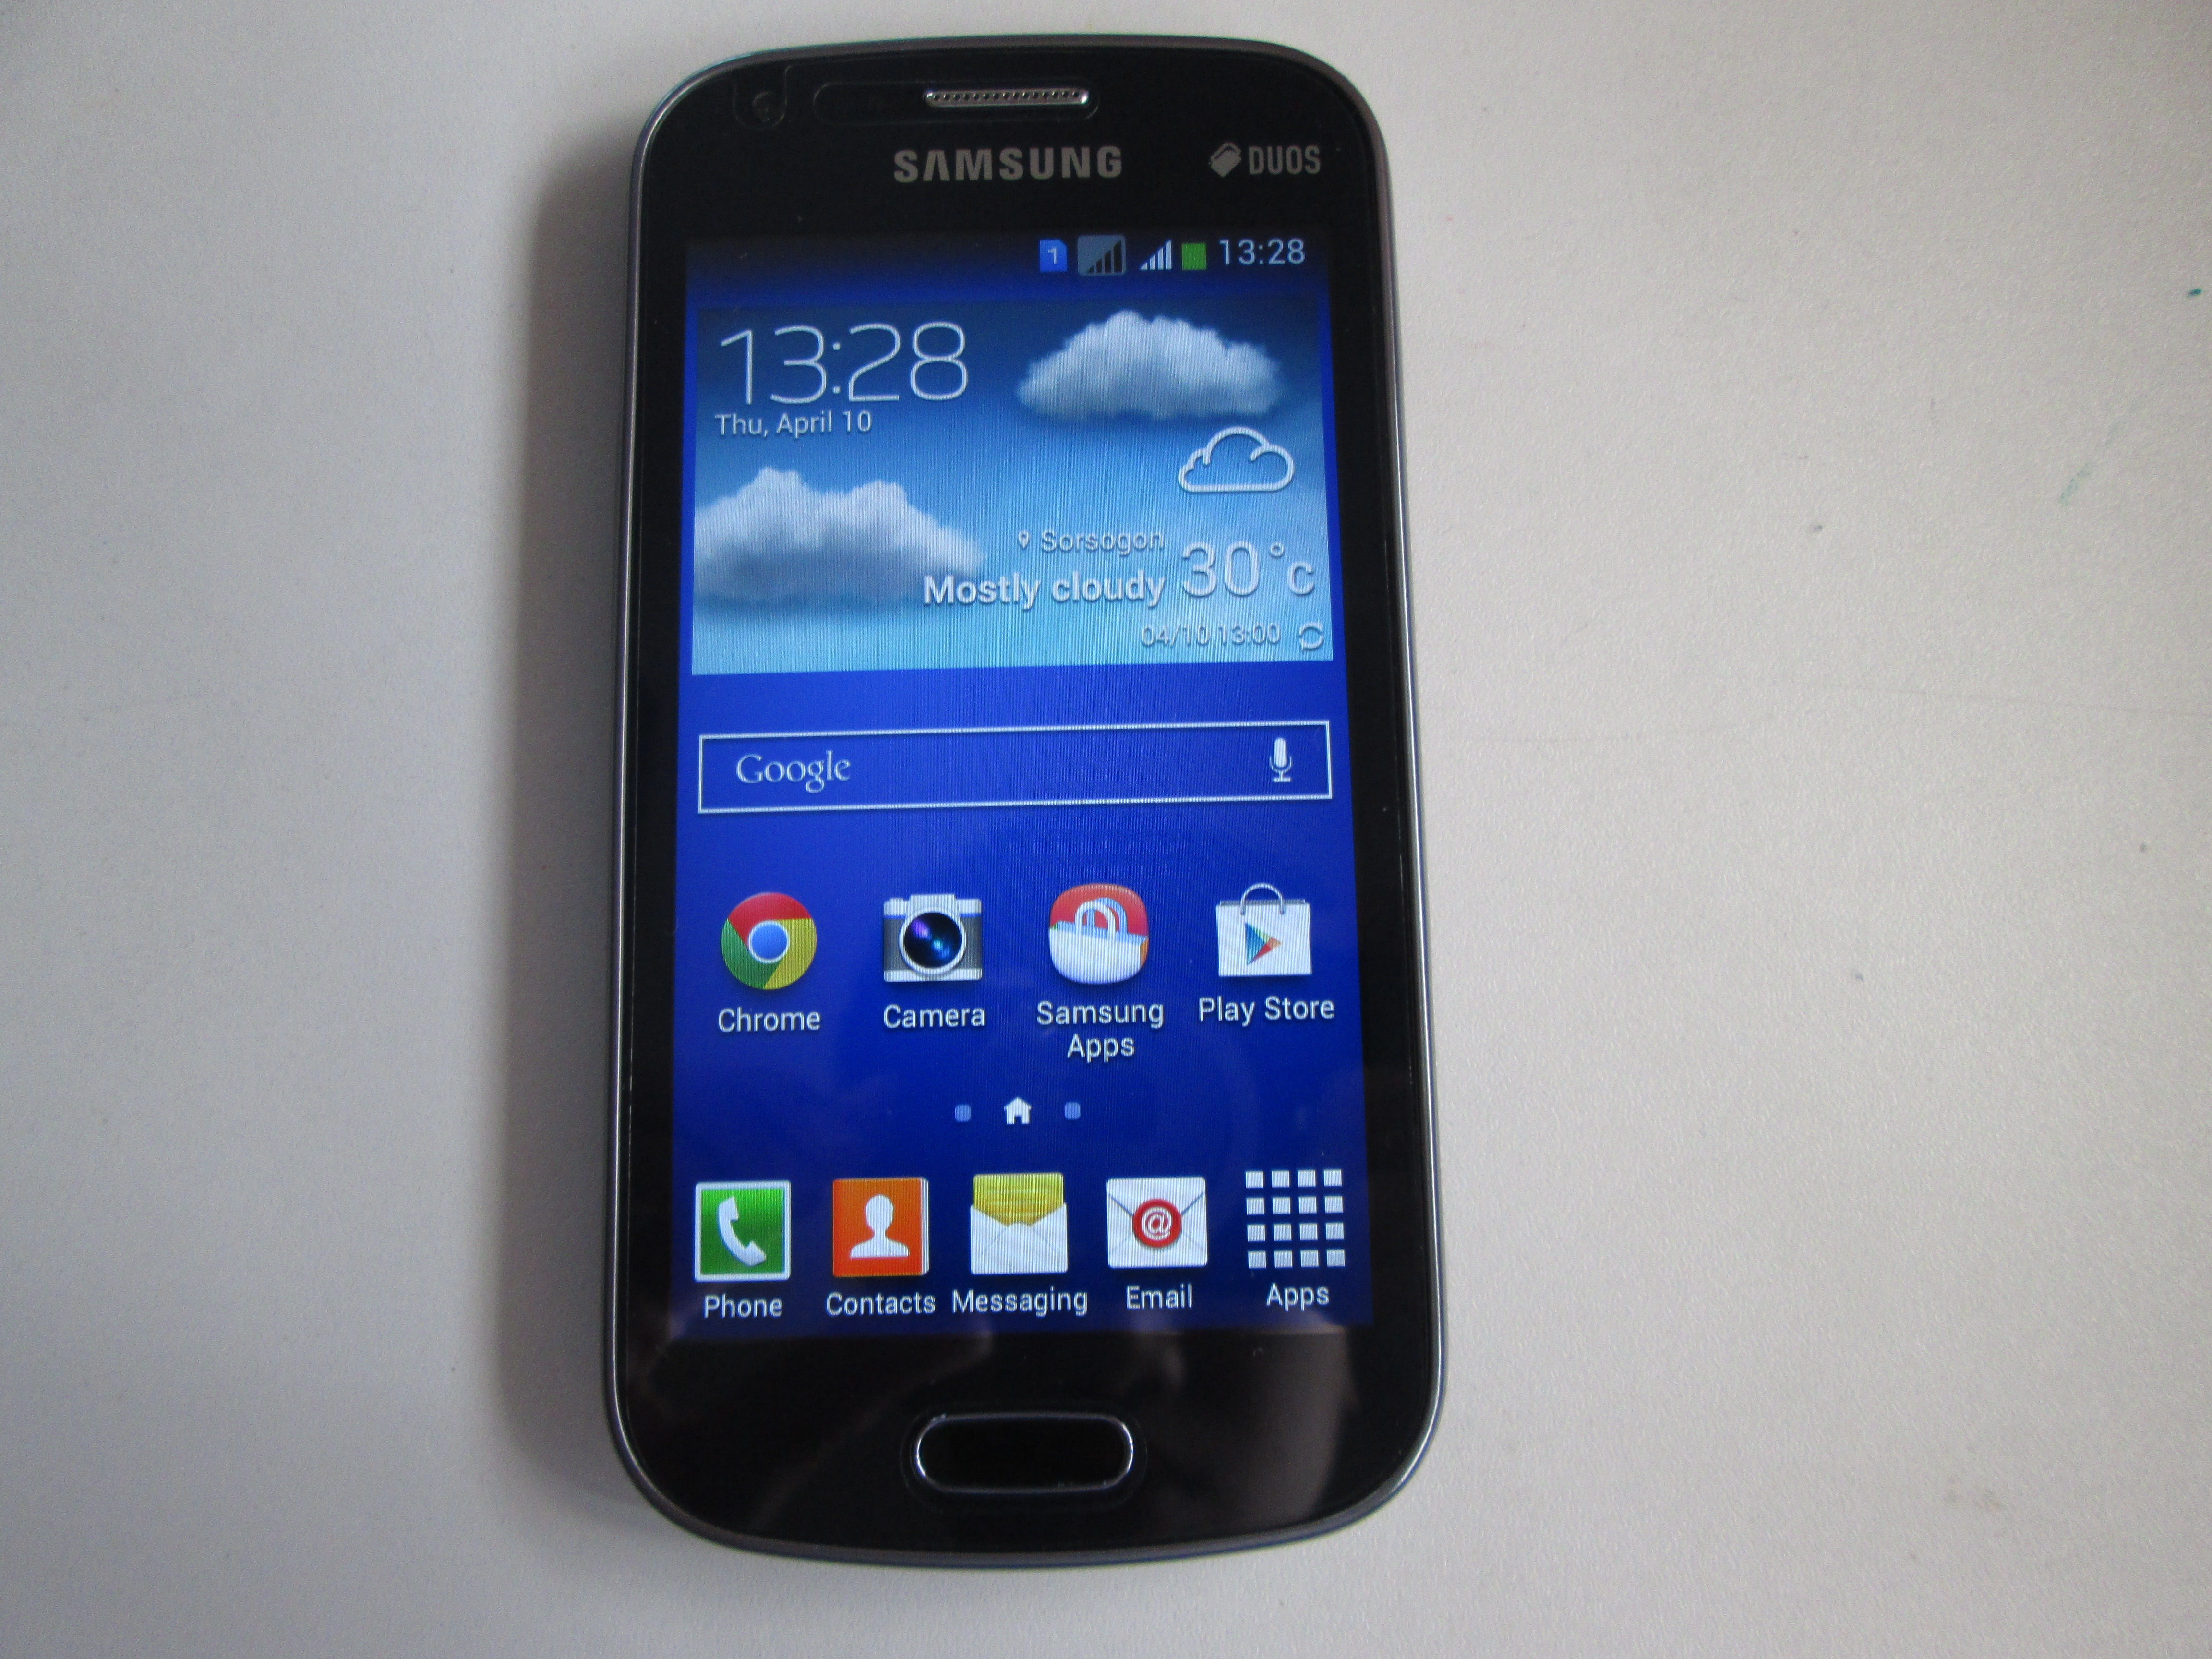 ACER GALAXY S III WINDOWS 7 DRIVER DOWNLOAD